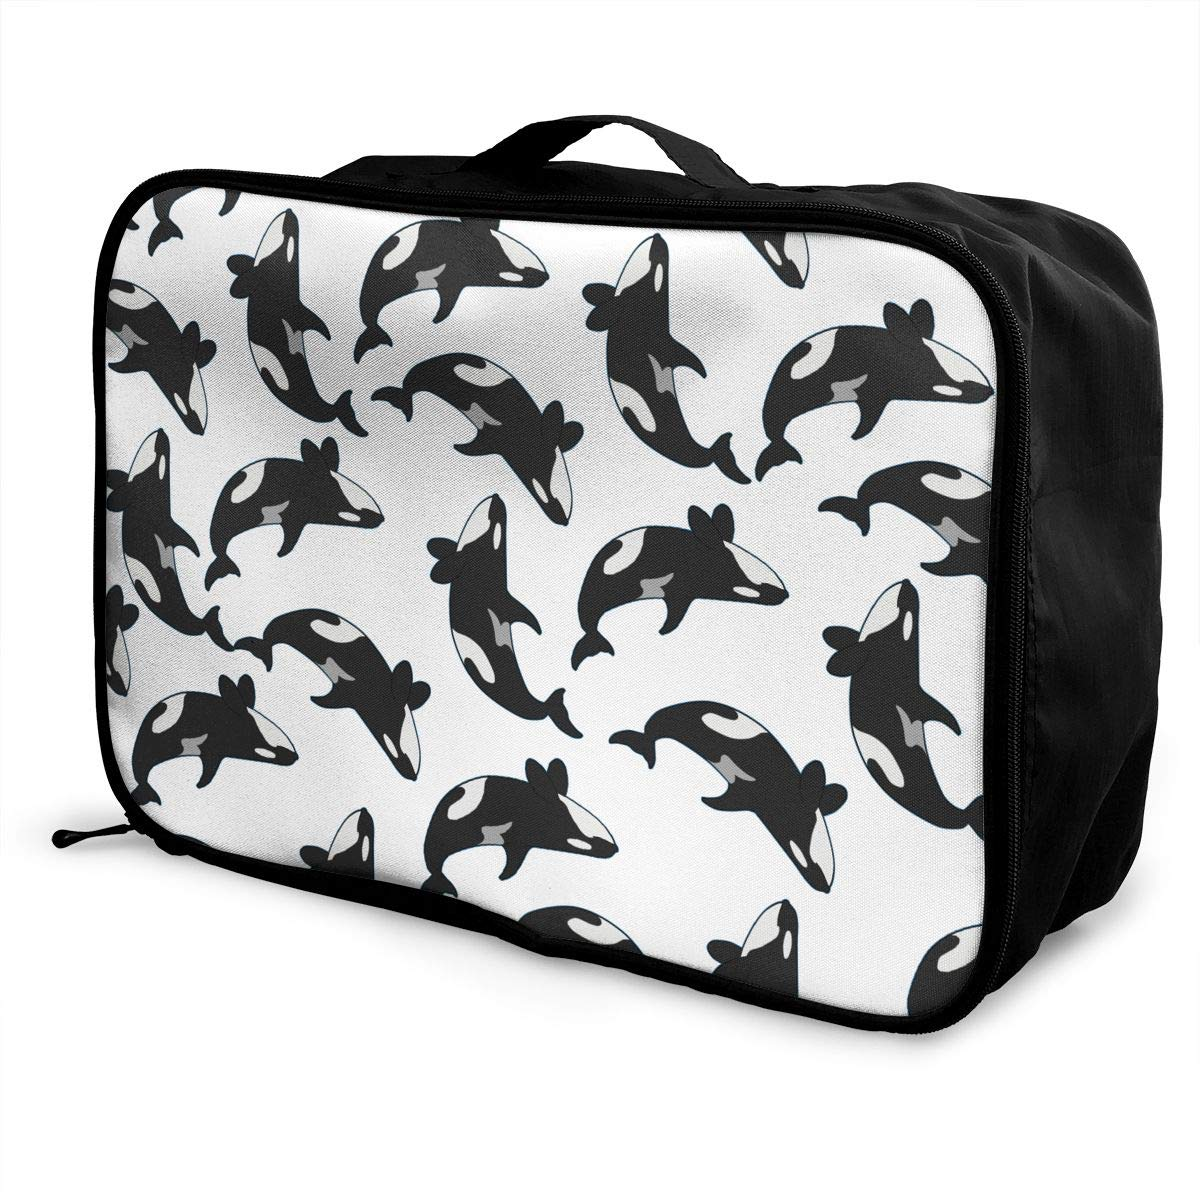 YueLJB Killer Whale Orcas Lightweight Large Capacity Portable Luggage Bag Travel Duffel Bag Storage Carry Luggage Duffle Tote Bag